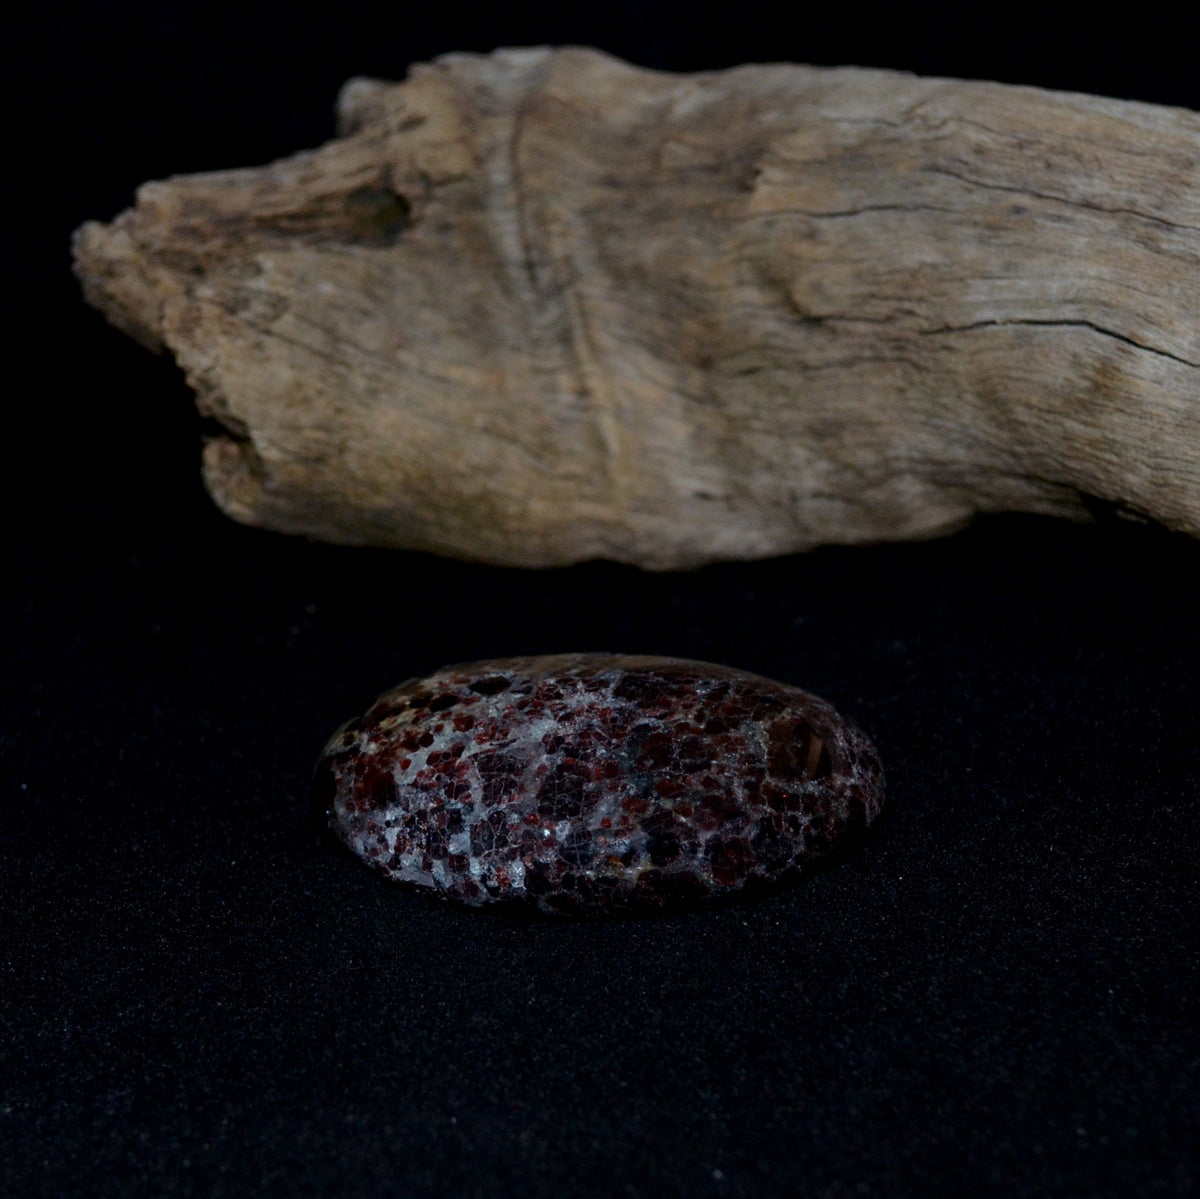 Red Garnet Palmstone - Loyalty Passion Relationships - Buy Now at Illiom Crystals - Afterpay Available